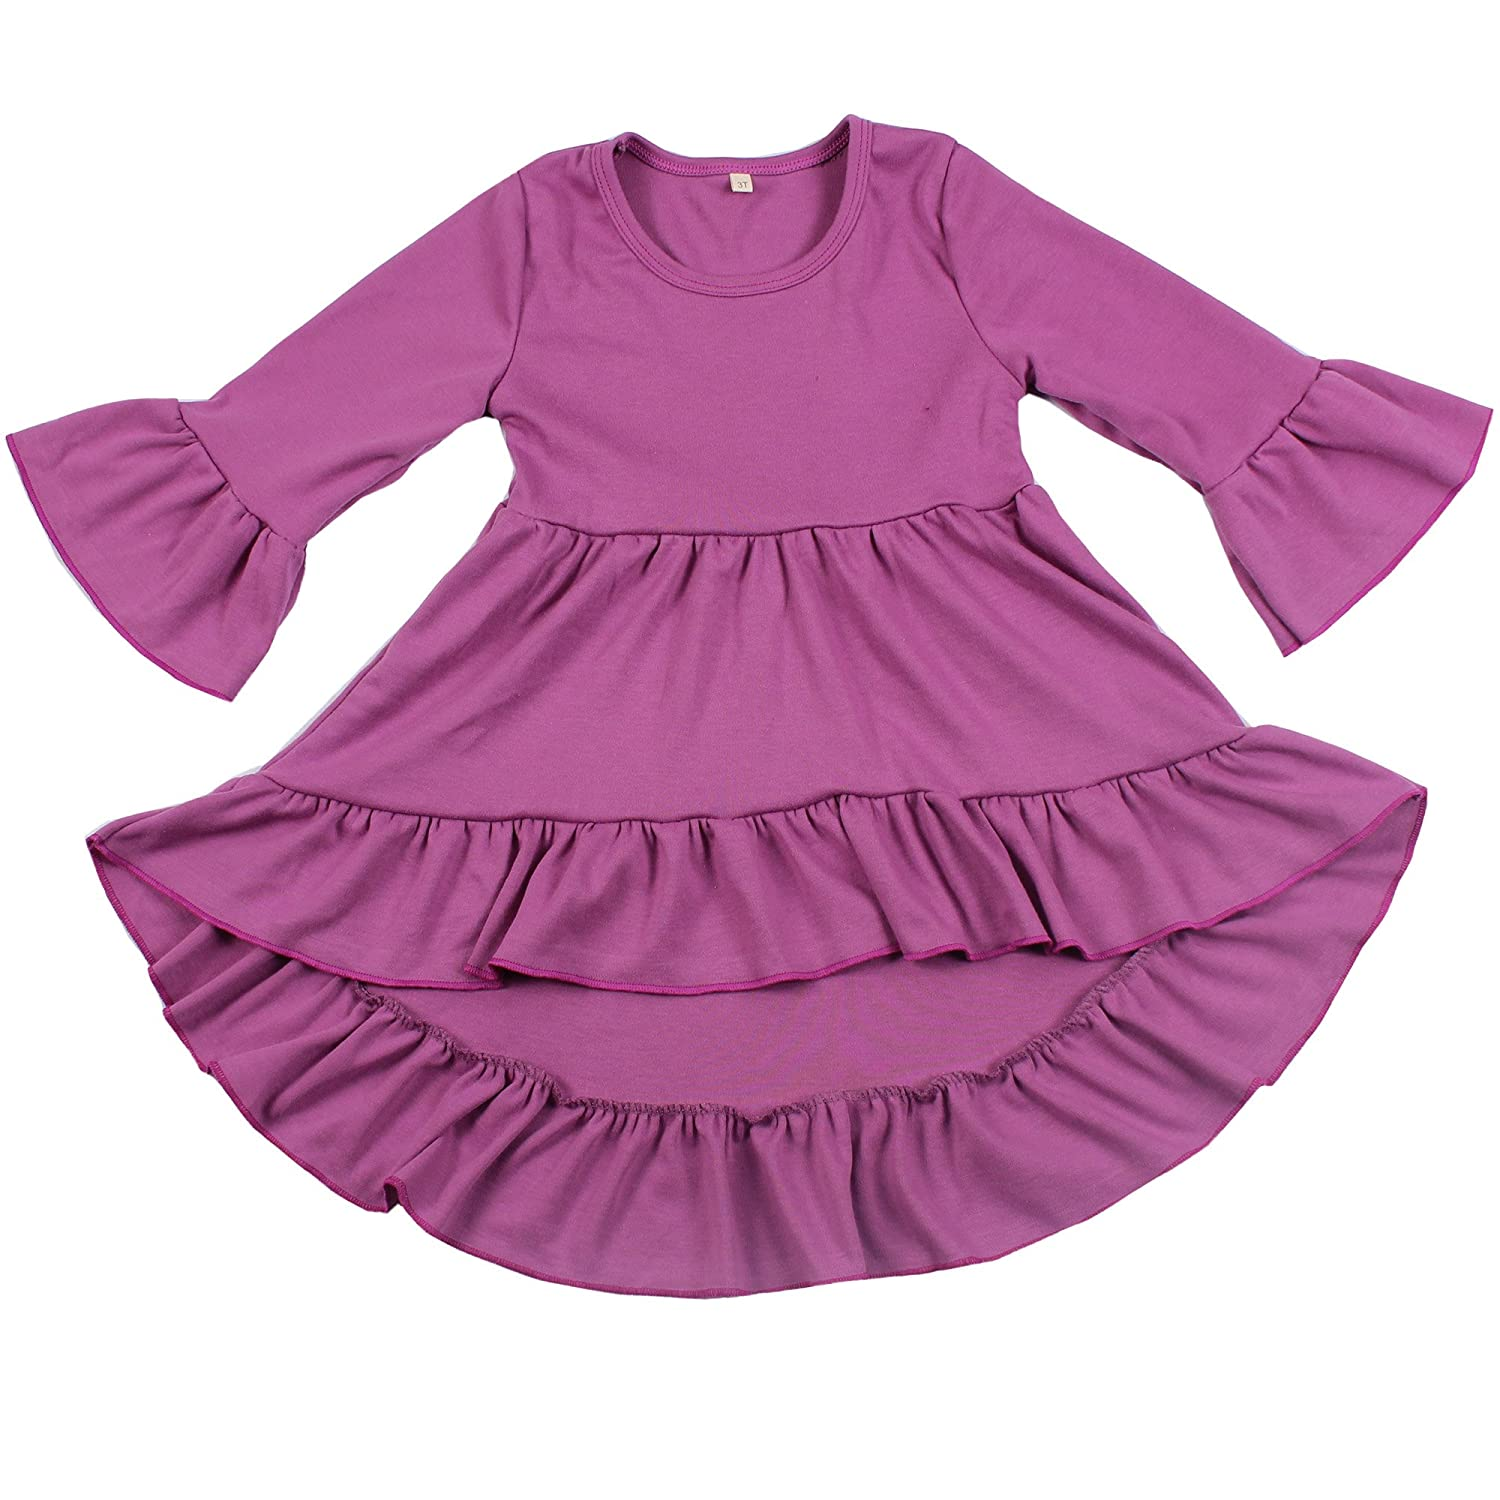 Yawoo Haan Toddler Girls 3/4 Sleeve Boutique Dresses Casual High Low Dress